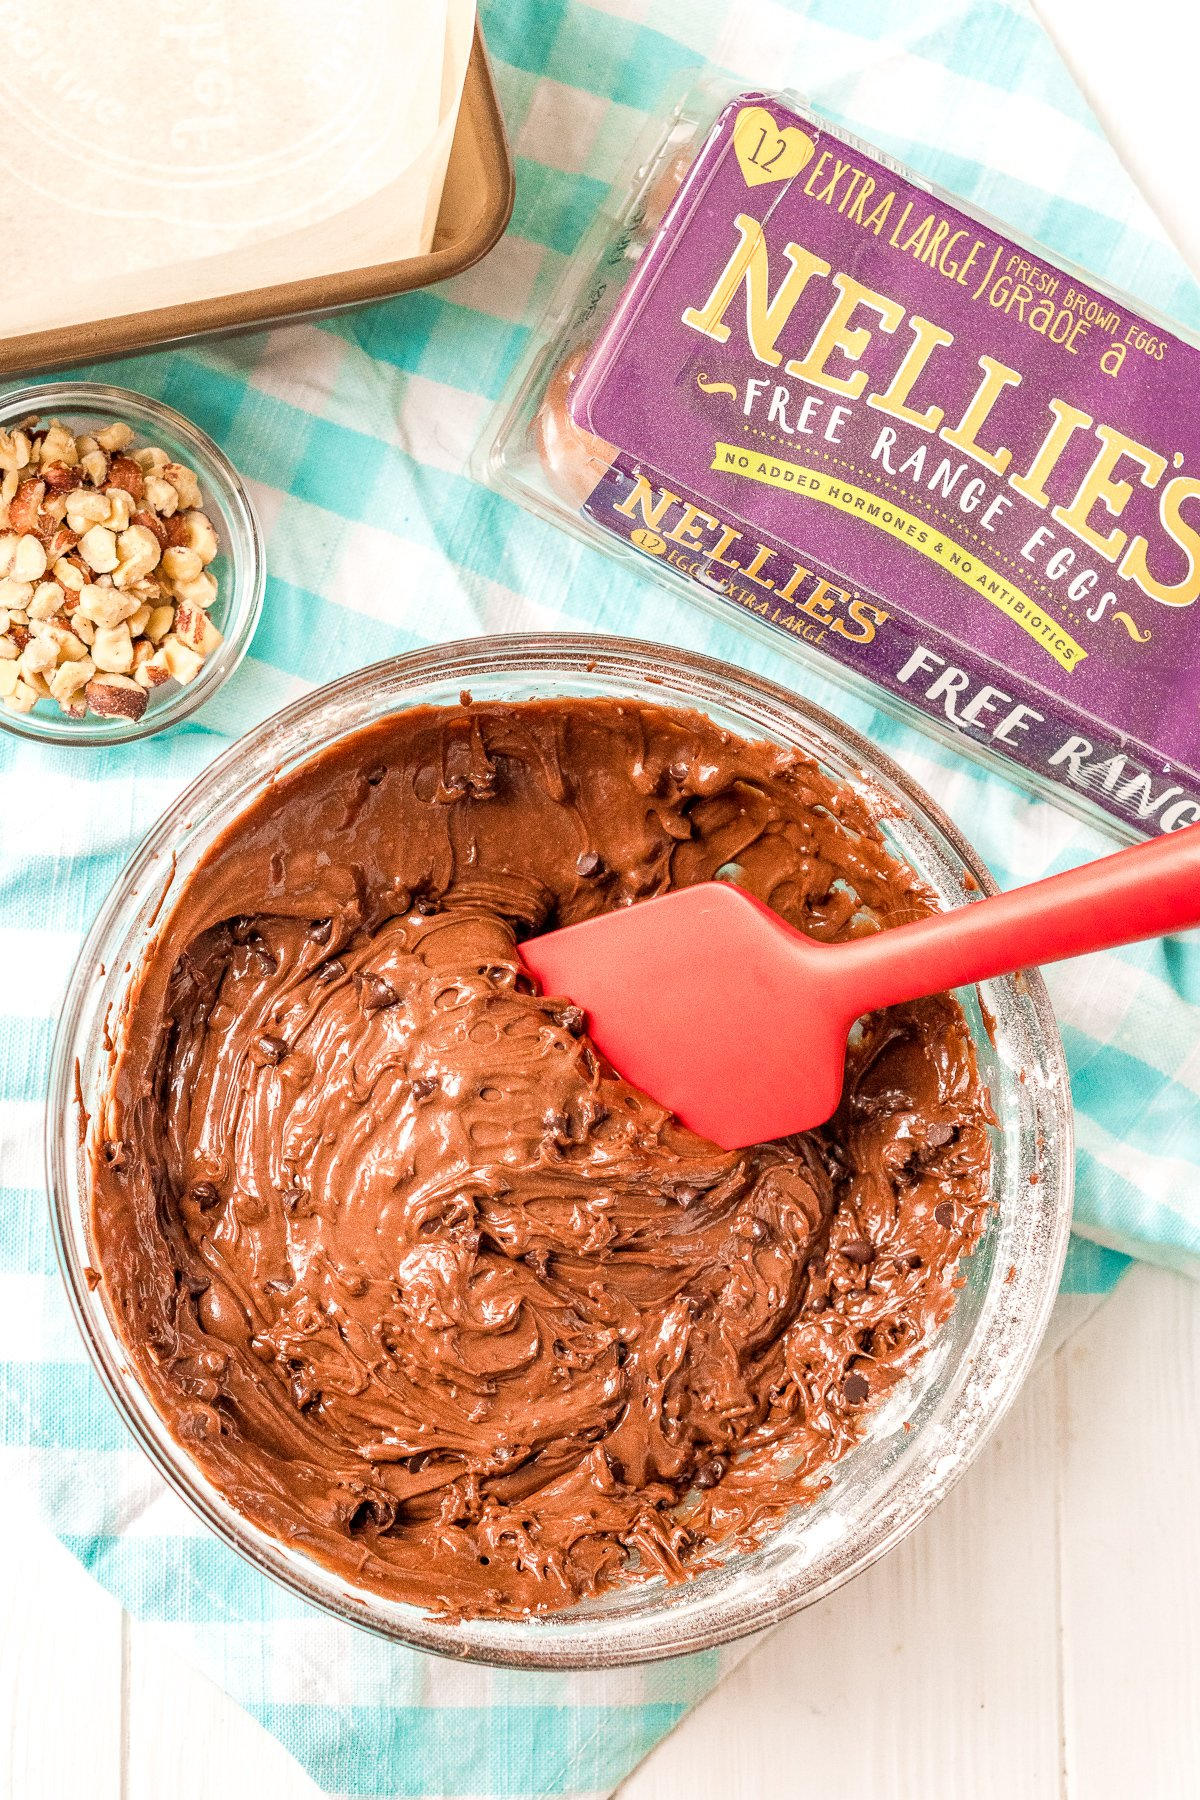 Brownie batter in a large mixing bowl with a smaller bowl of chopped hazelnuts next to it.